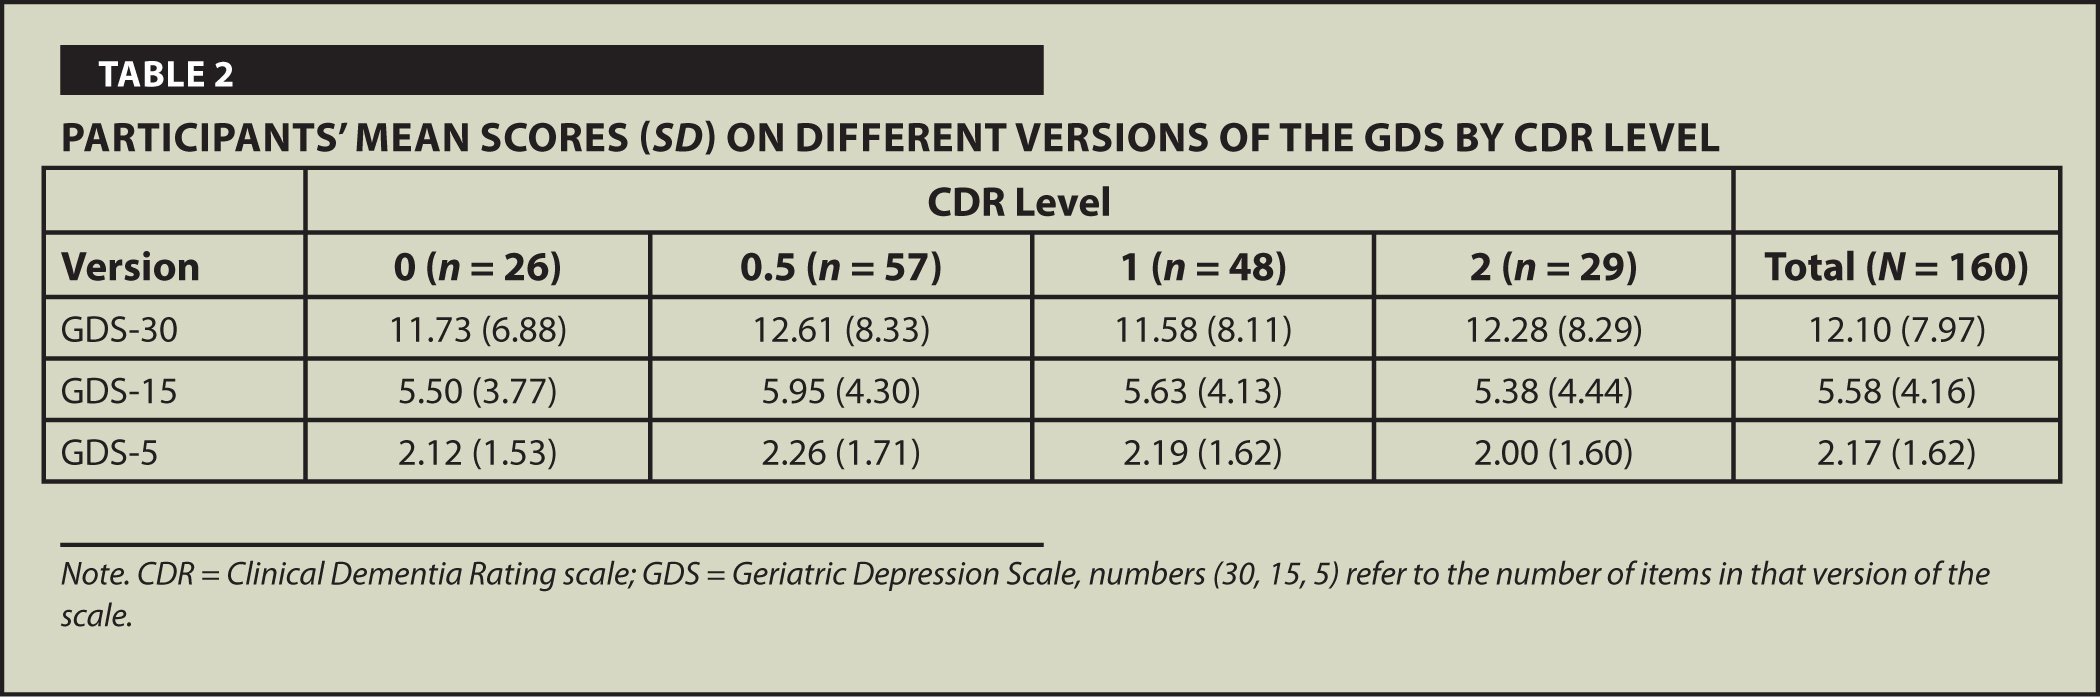 Participants' Mean Scores (SD) on Different Versions of the GDS by CDR Level